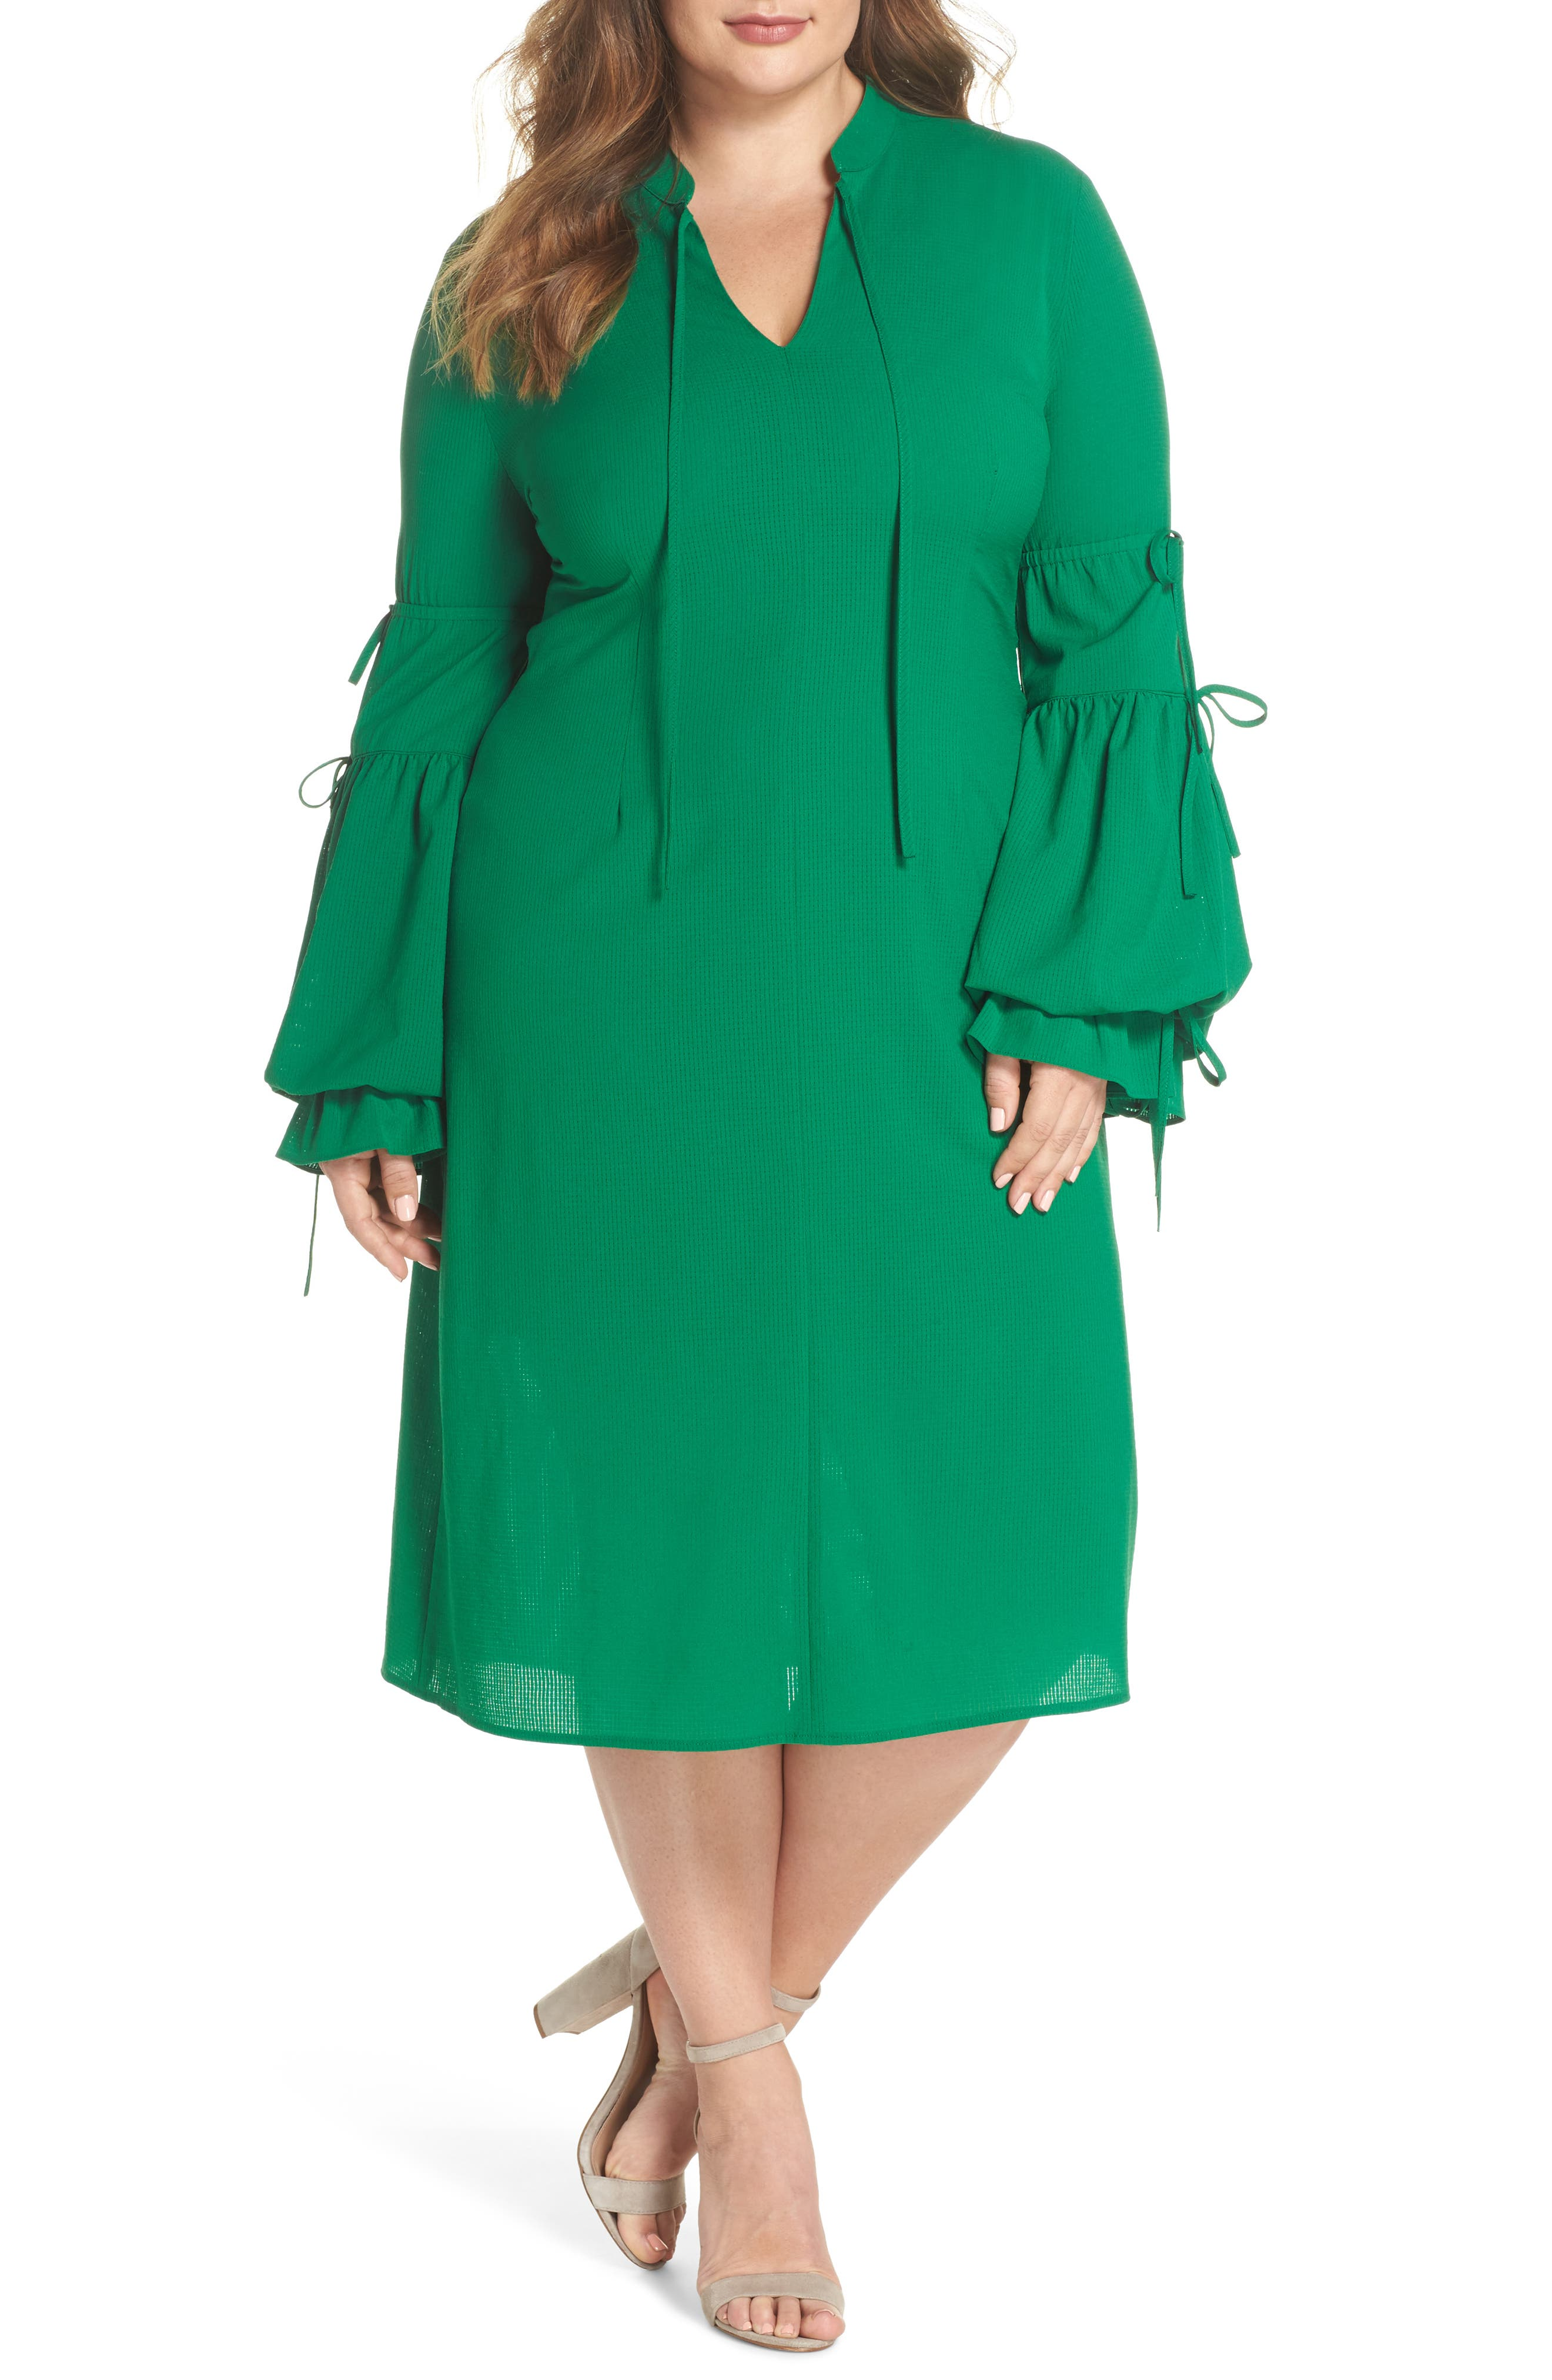 Leiko Antoinette Puff Sleeve Tea Dress,                         Main,                         color, Green